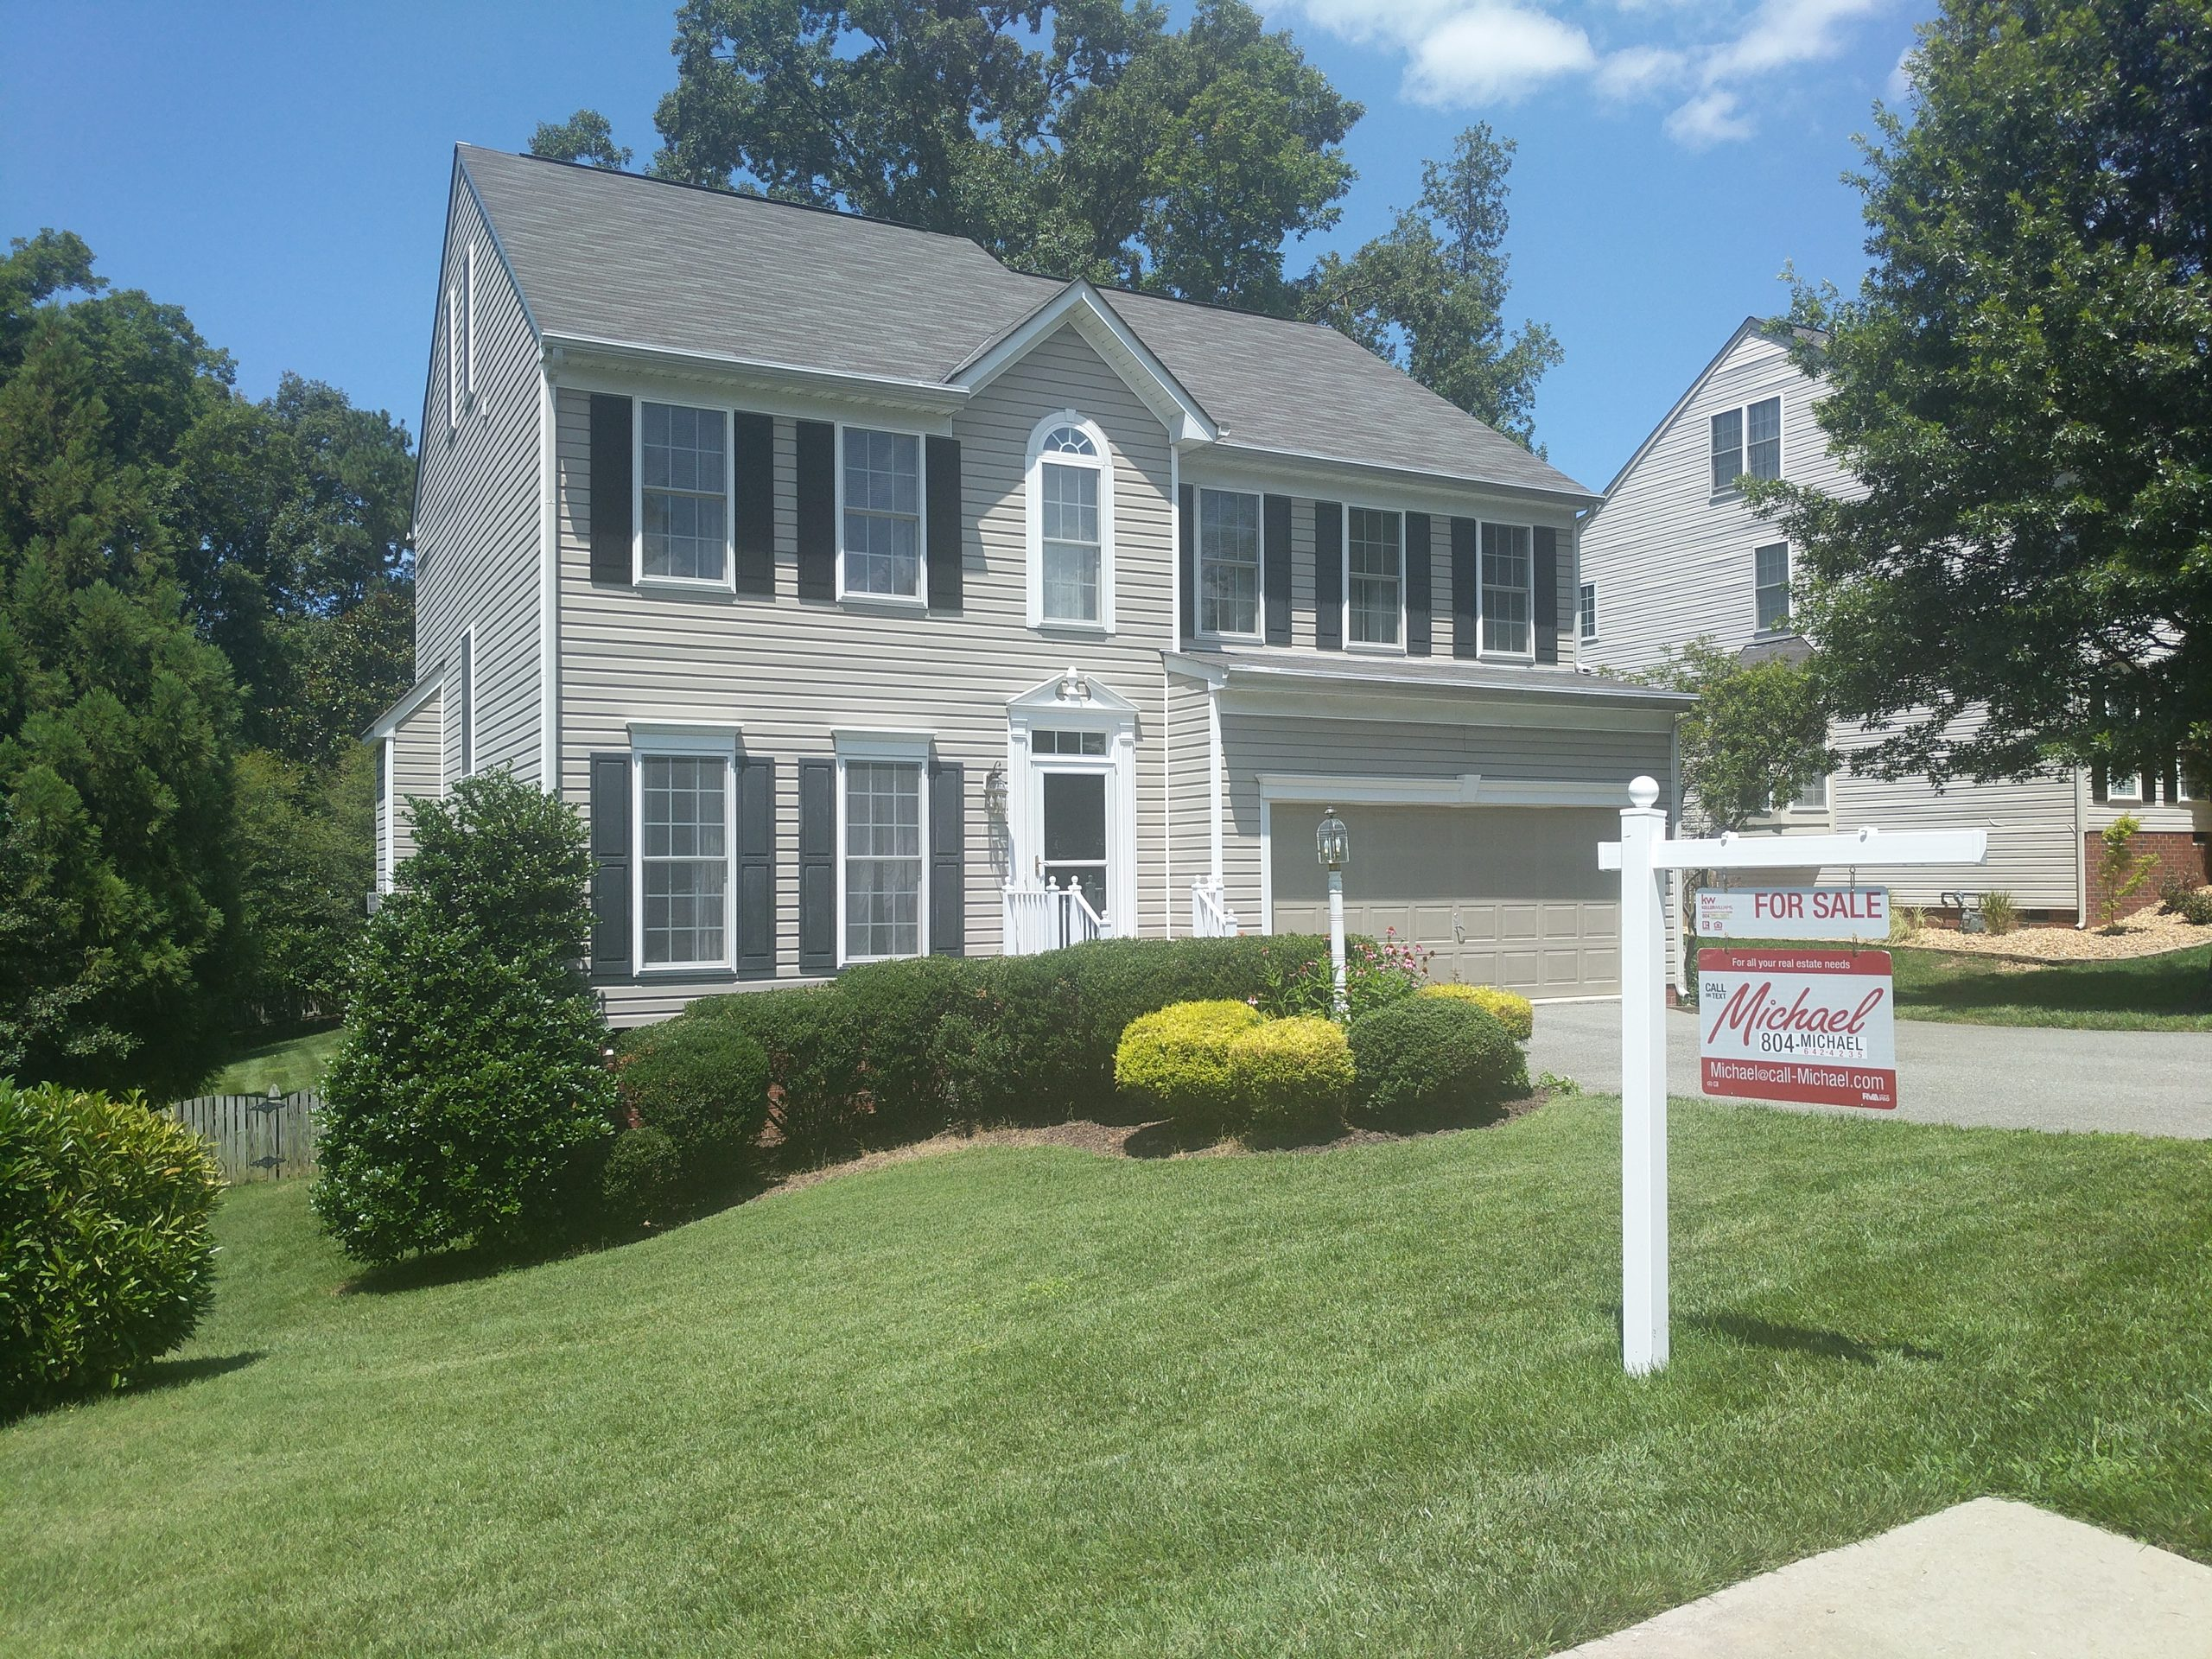 Home in Mechanicsville at 6420 Midday Lane, Mechanicsville, VA 23111